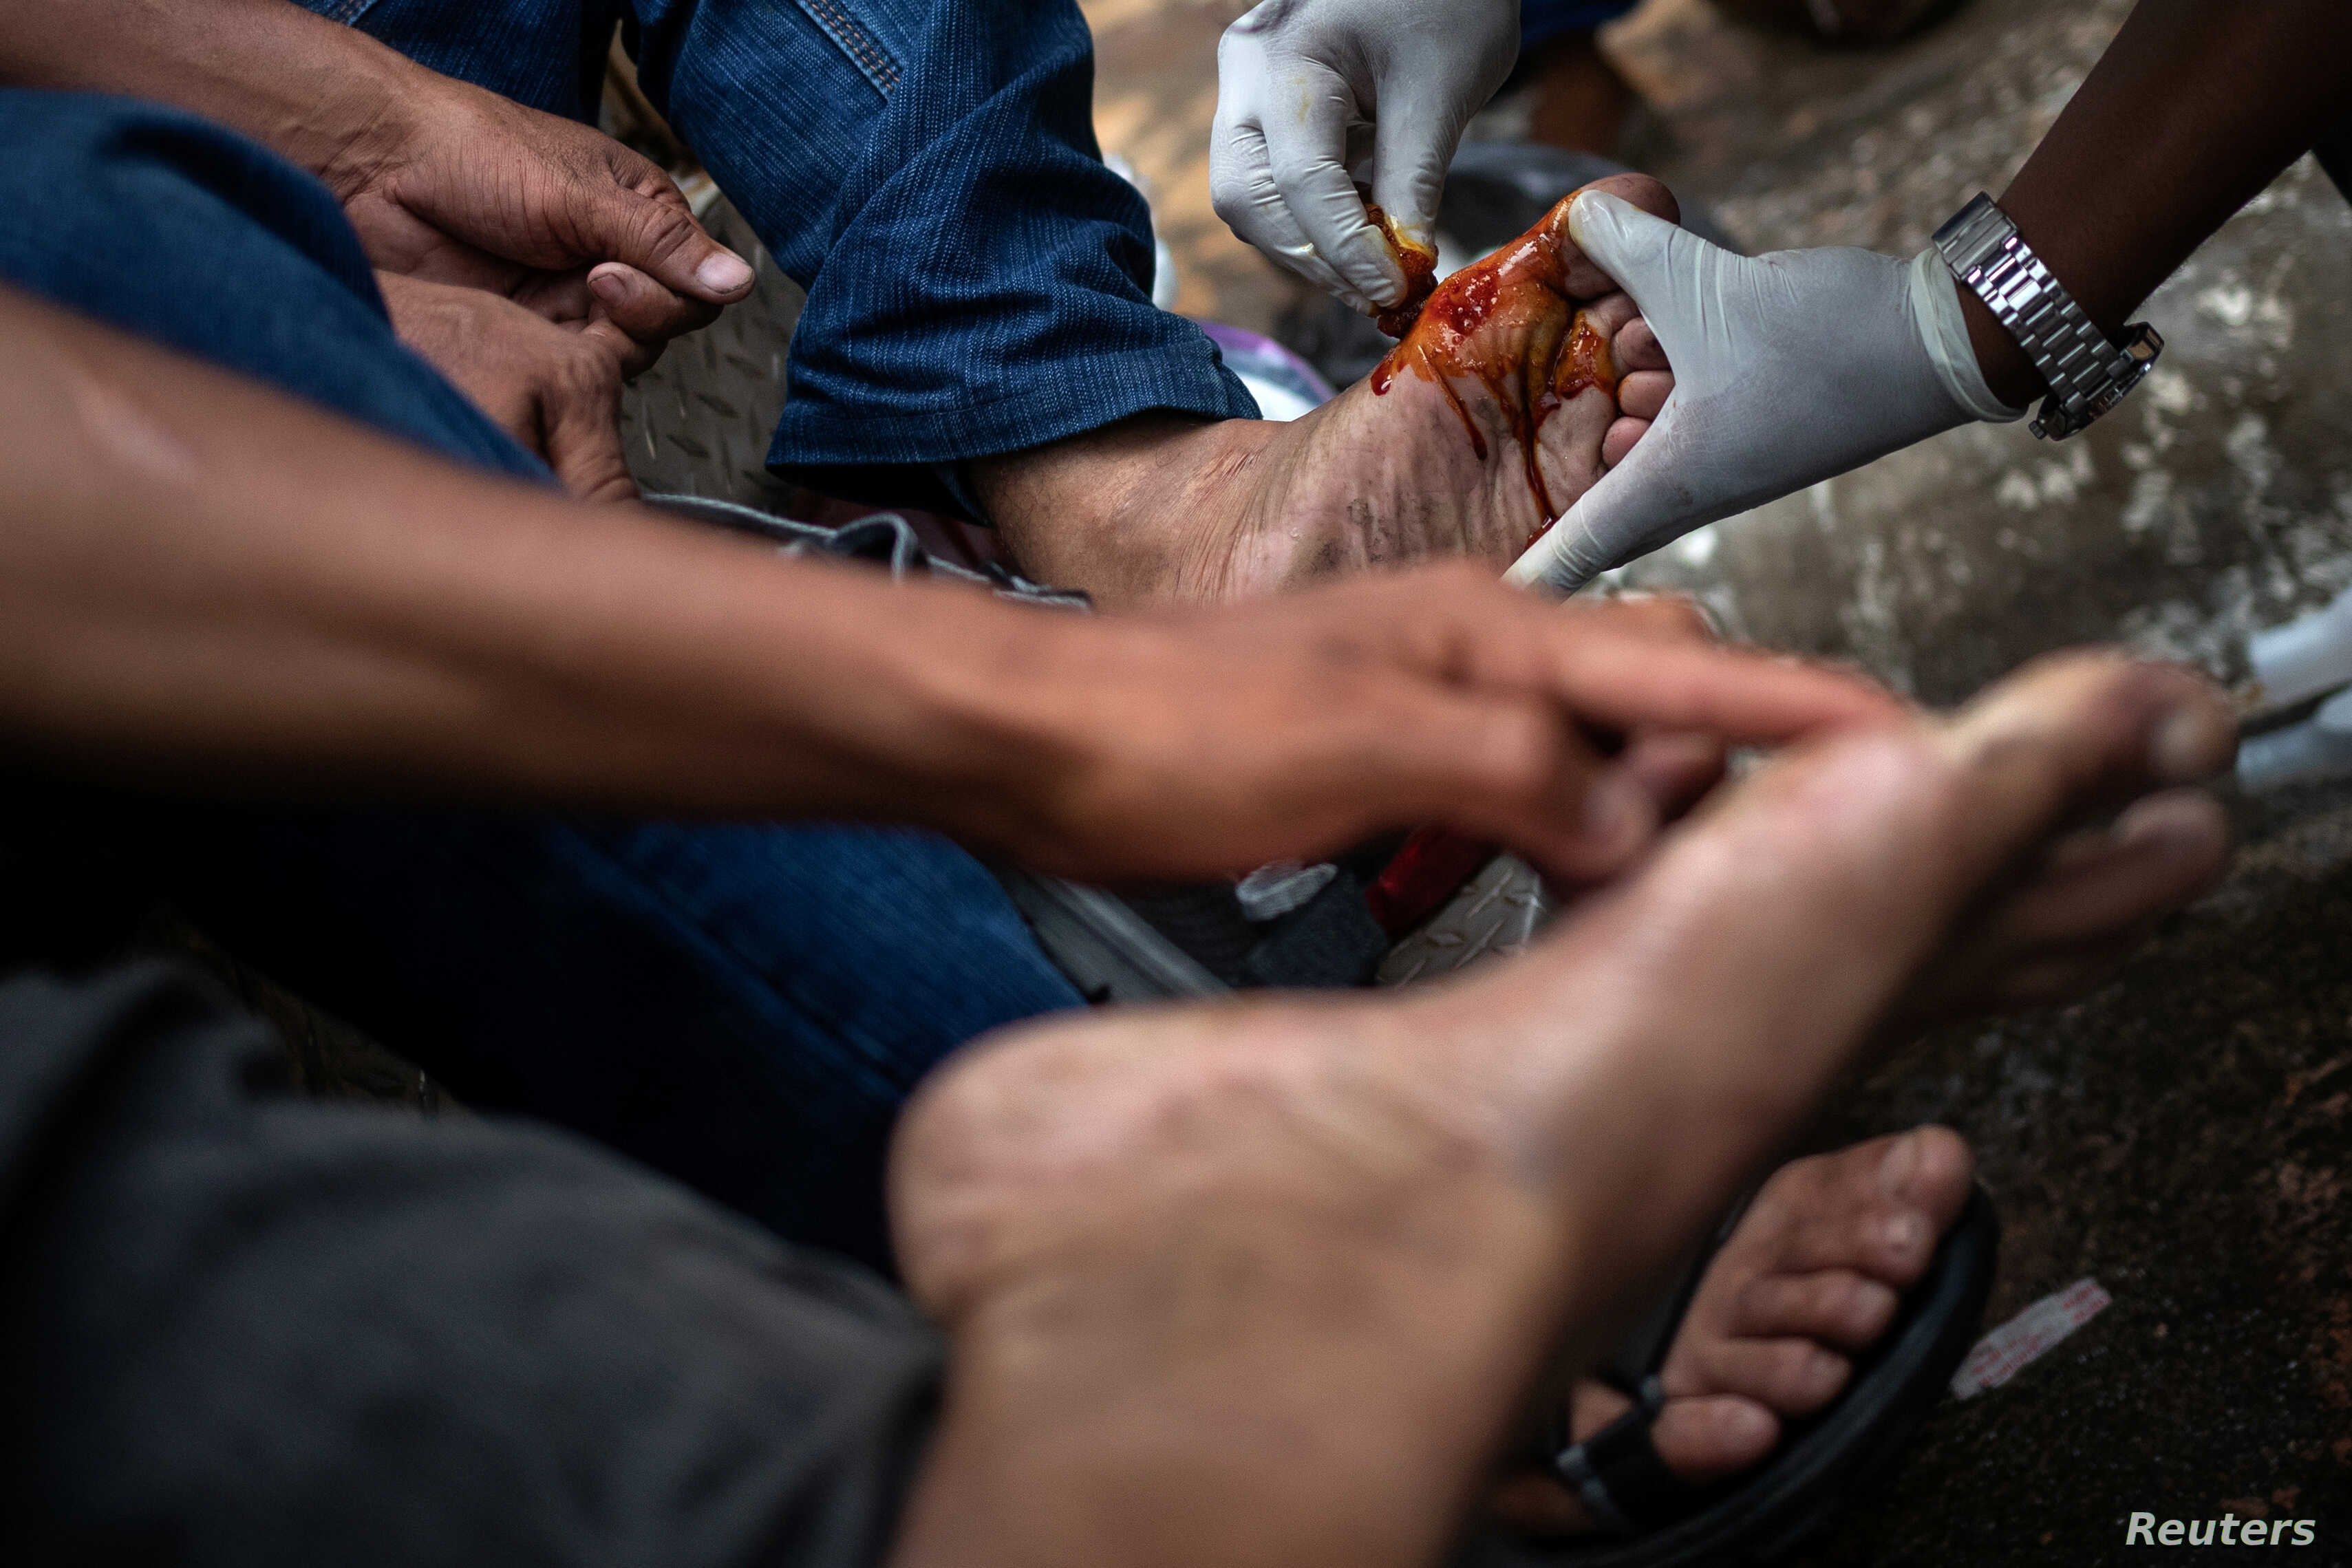 Migrants receive medical attention for blisters as they arrive to rest with a caravan of thousands from Central America en route to the United States, in theTapachula city center, Mexico, Oct. 21, 2018.